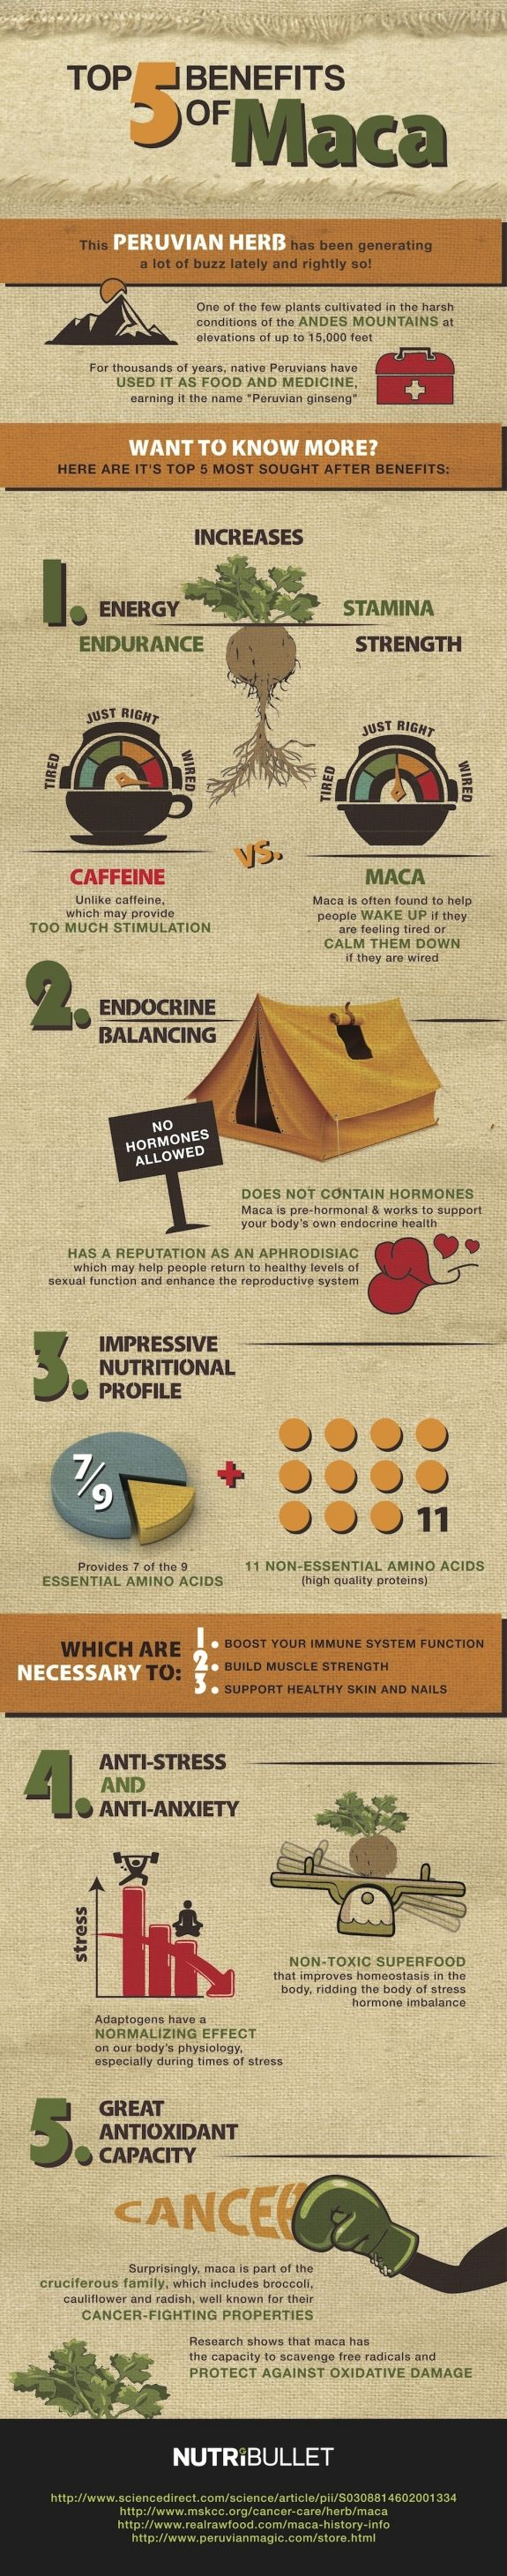 Top 5 Benefits of Maca [infographic]